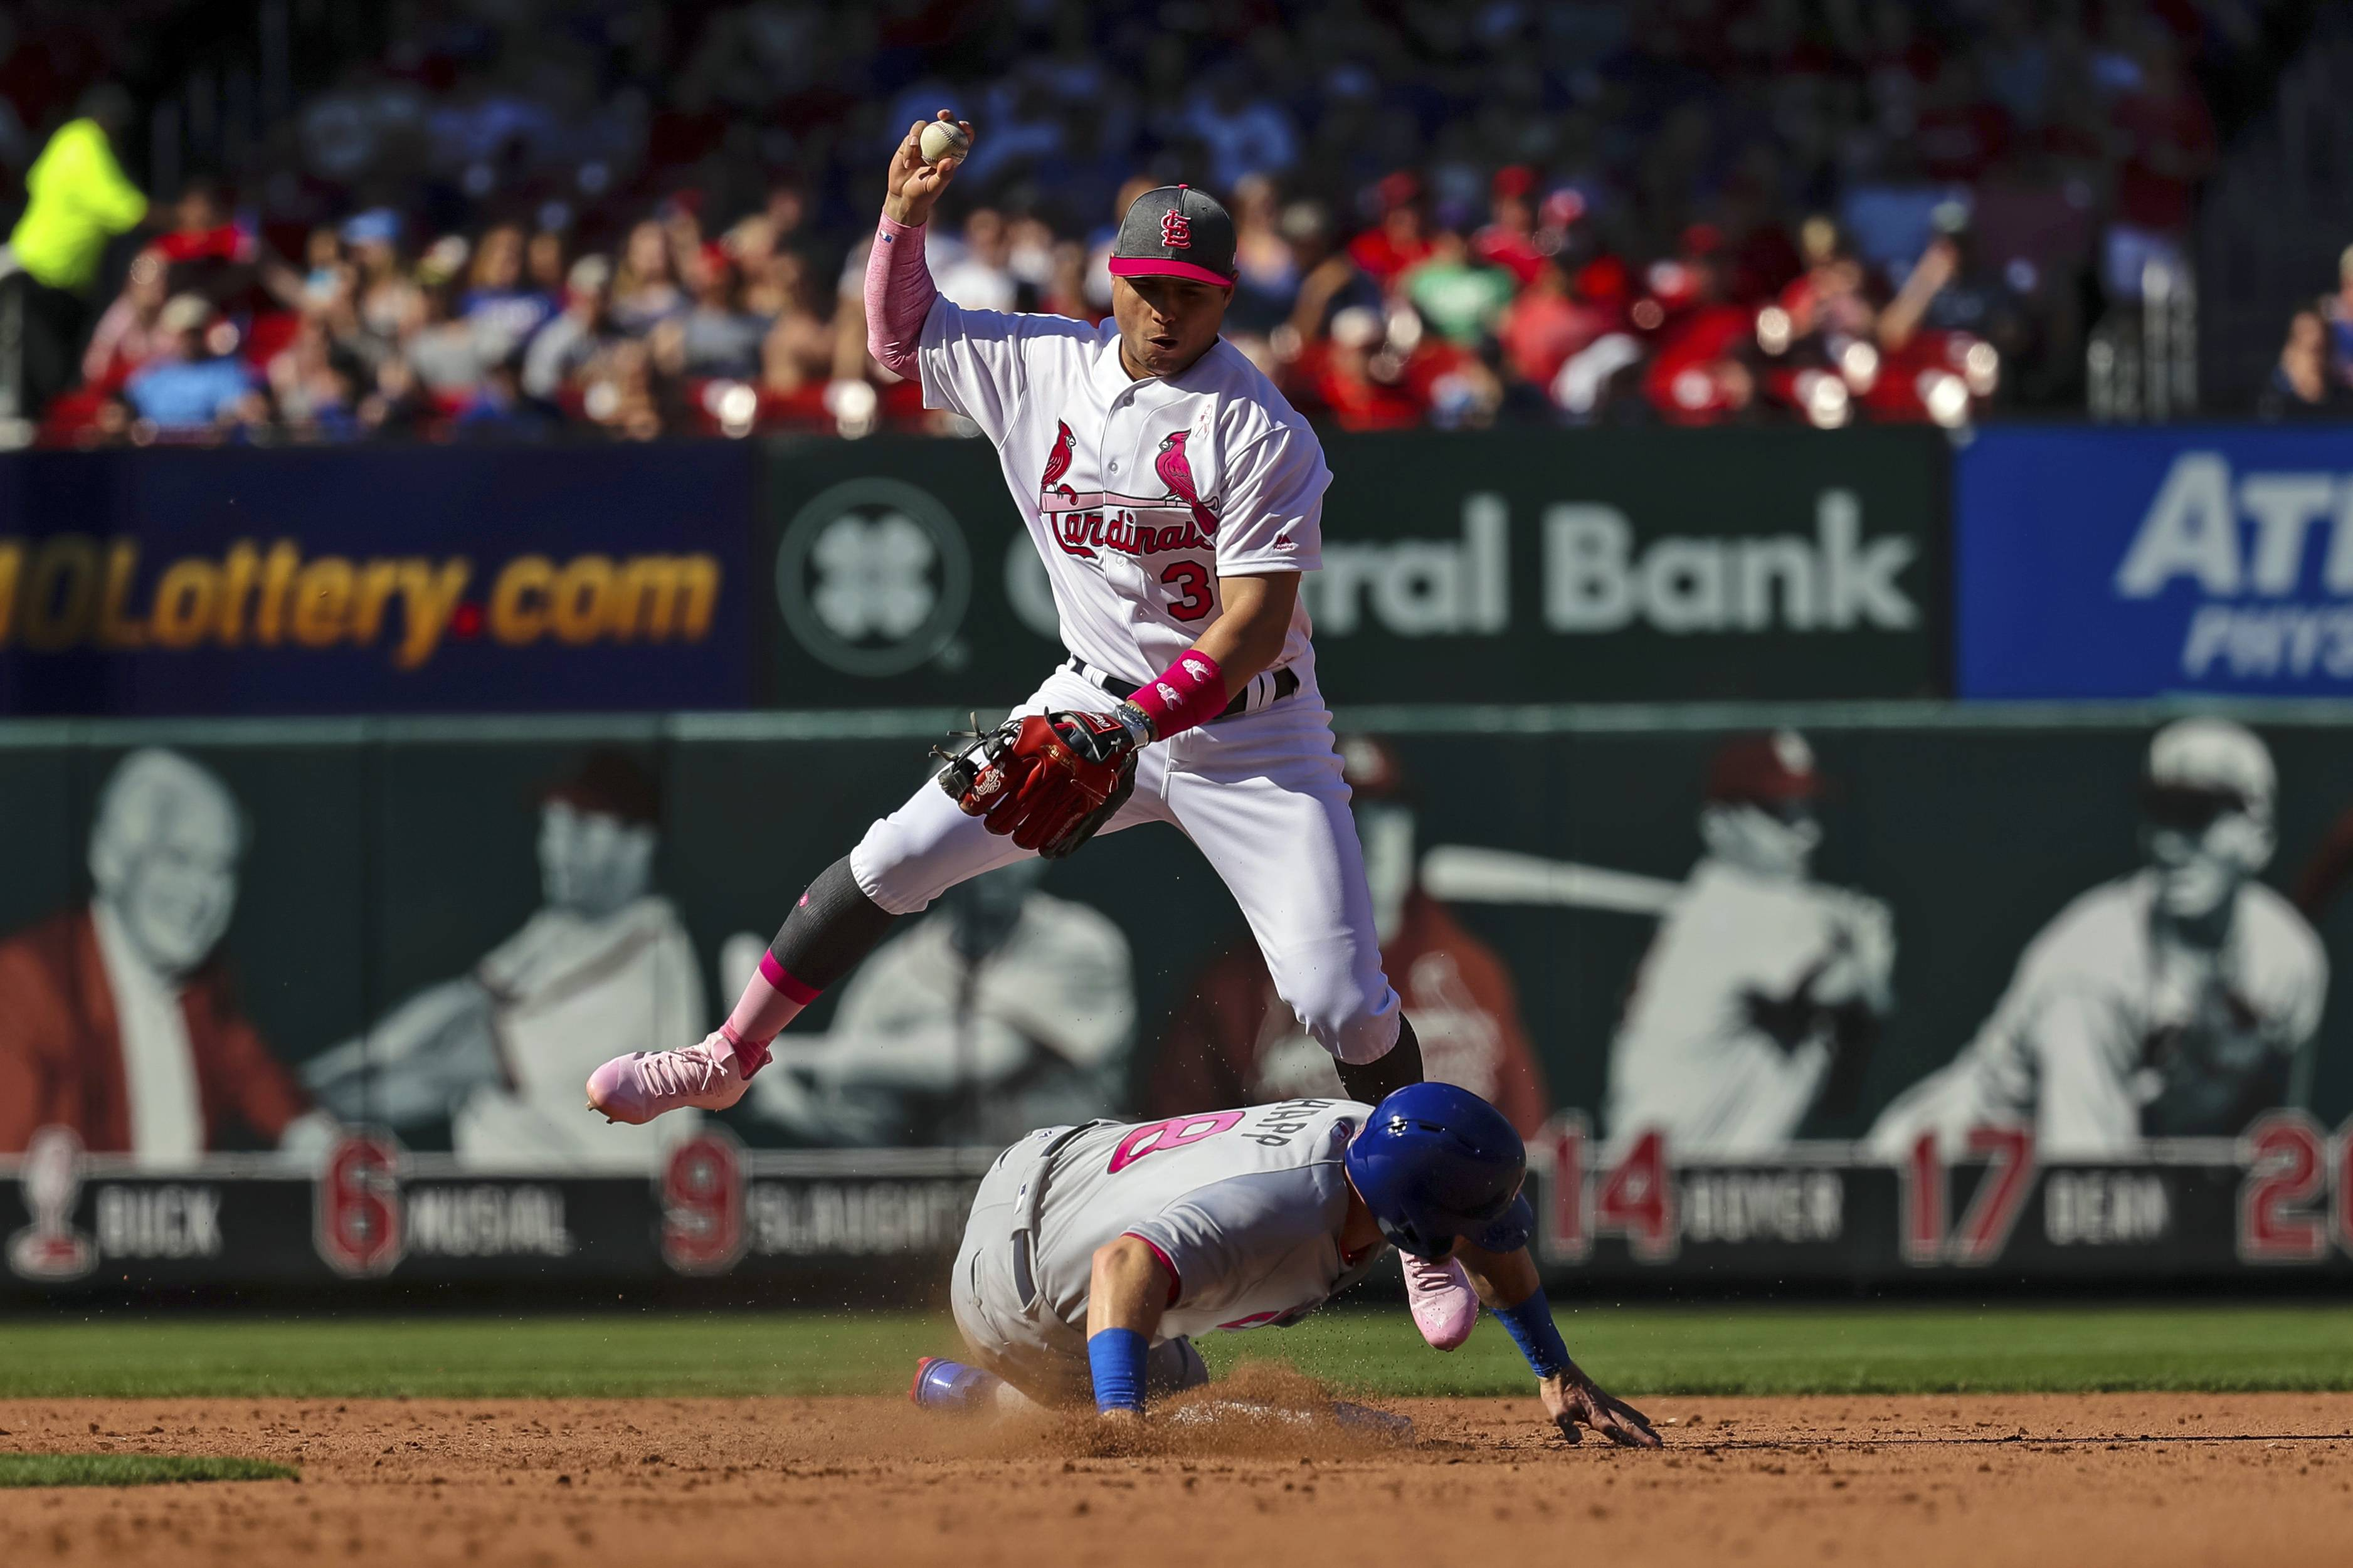 St. Louis Cardinals shortstop Aledmys Diaz, top, leaps into the air as Chicago Cubs' Ian Happ, bottom, slides in to break up a double play in the fifth inning of a baseball game, Saturday, May 13, 2017, in St. Louis. The Cubs' Anthony Rizzo was called out at first due to slide interference by Happ, (AP Photo/Tim Spyers)